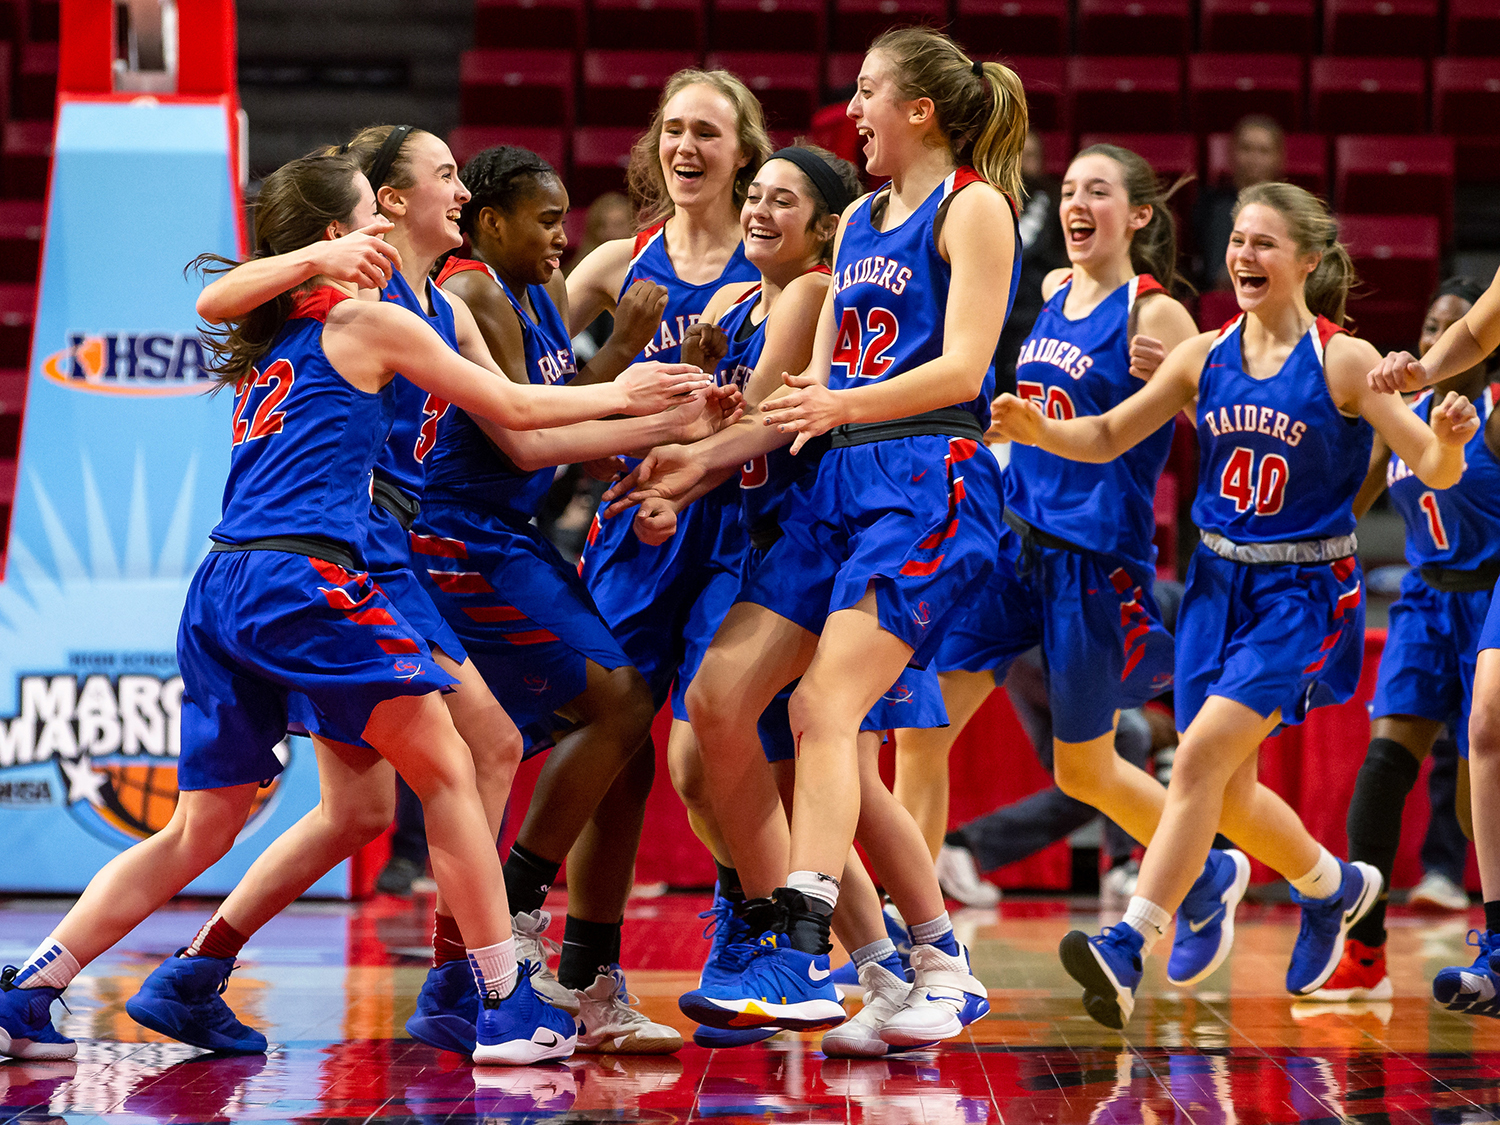 Glen Ellyn Glenbard South's Maggie Bair (42) and the Raiders celebrate after defeating Sacred Heart-Griffin 32-27 in the IHSA Class 3A State Tournament semifinals at Redbird Arena, Friday, March 1, 2019, in Normal, Ill. [Justin L. Fowler/The State Journal-Register]